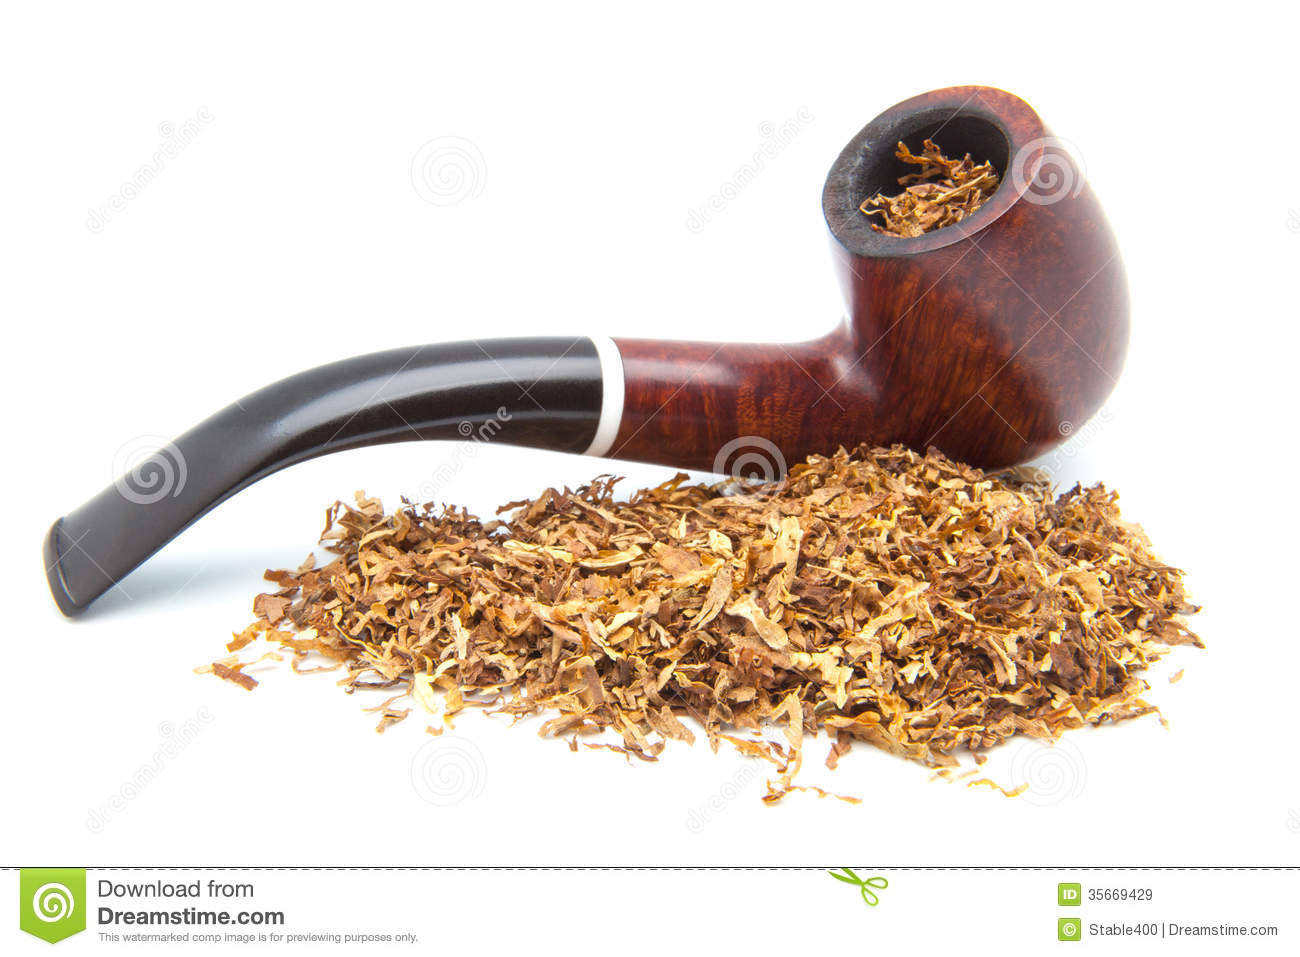 tobacco smoking and favorite foods